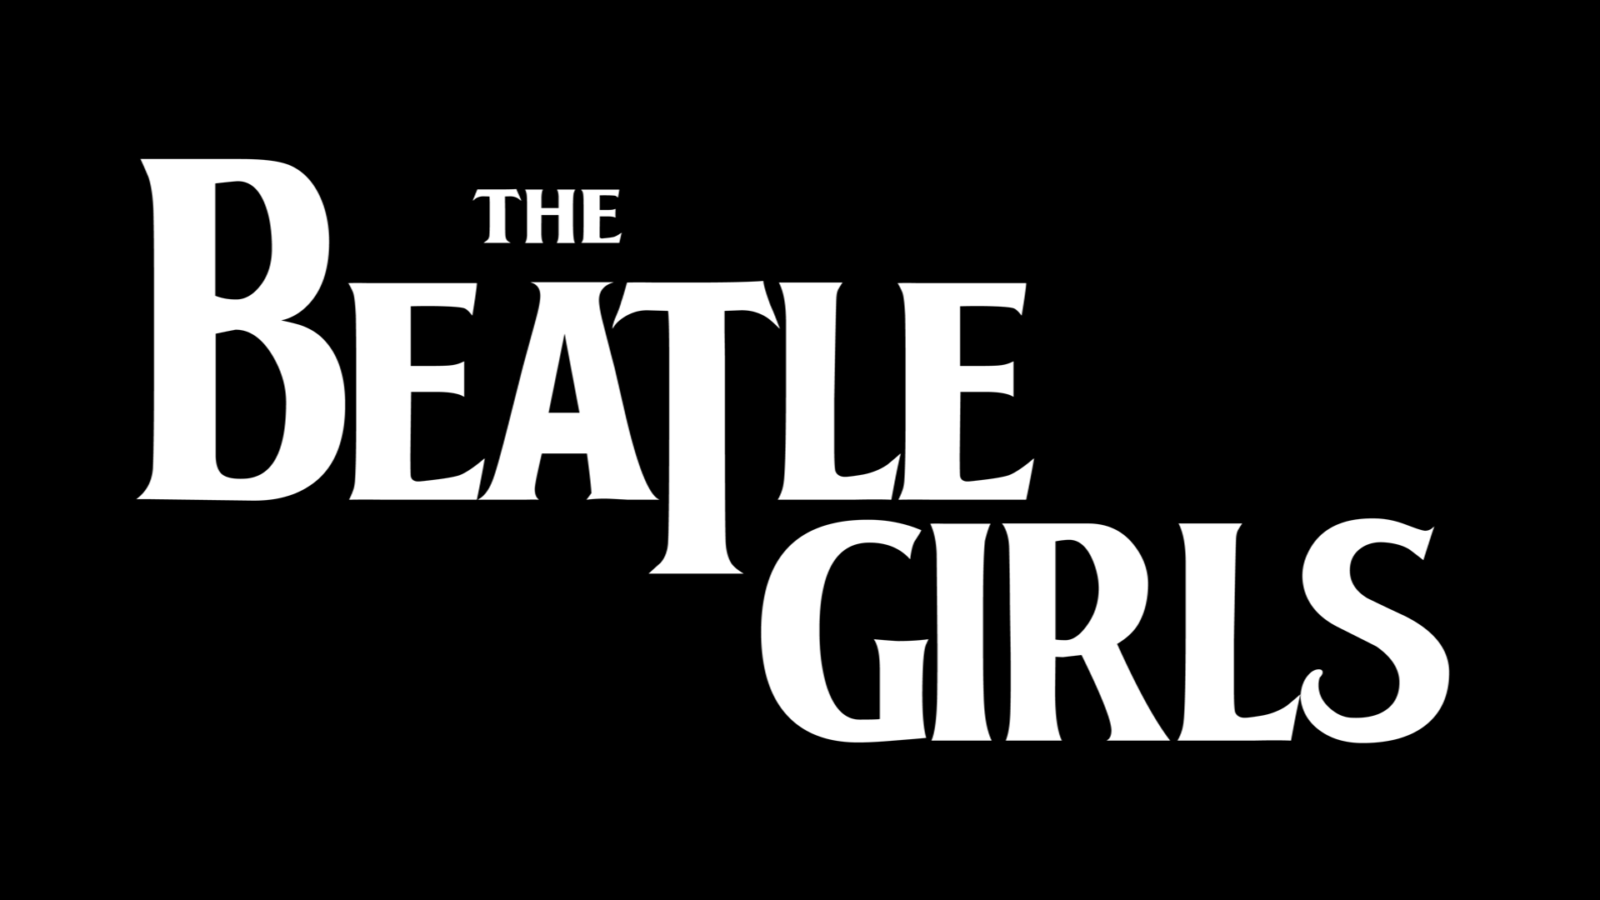 The Beatle Girls